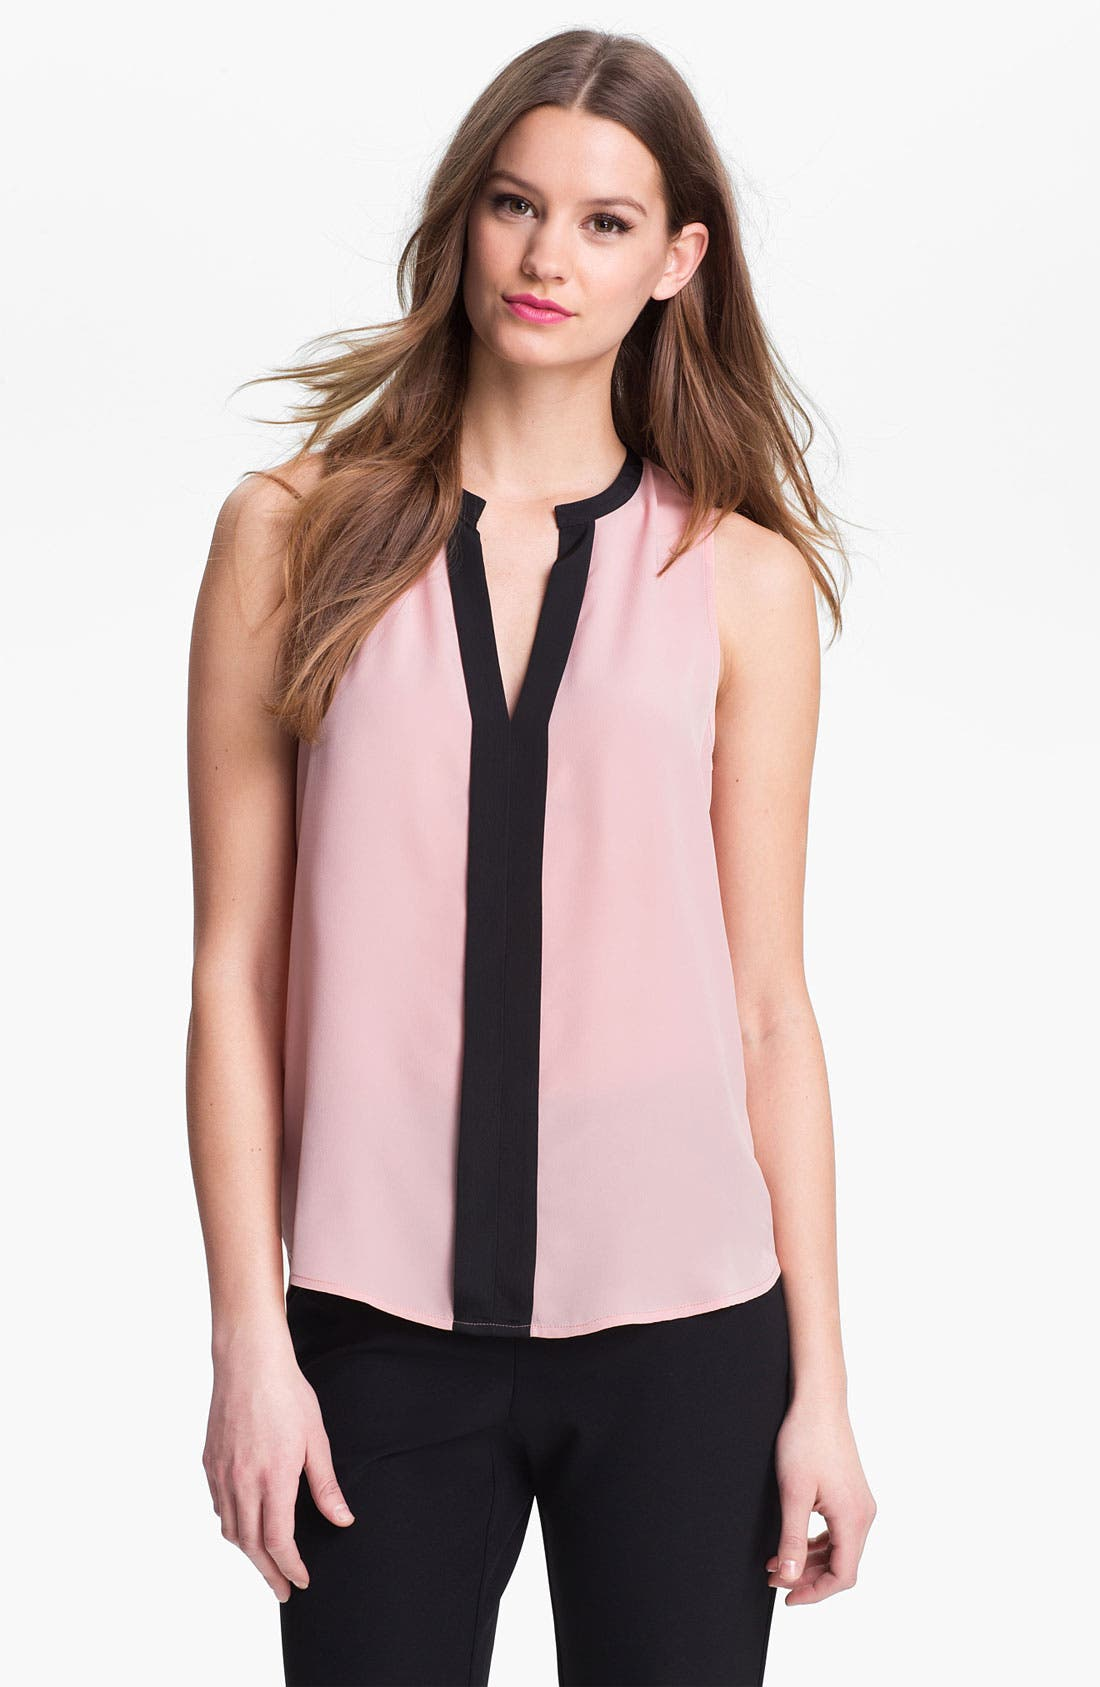 Alternate Image 1 Selected - Kenneth Cole New York 'Jenny' Sleeveless Top